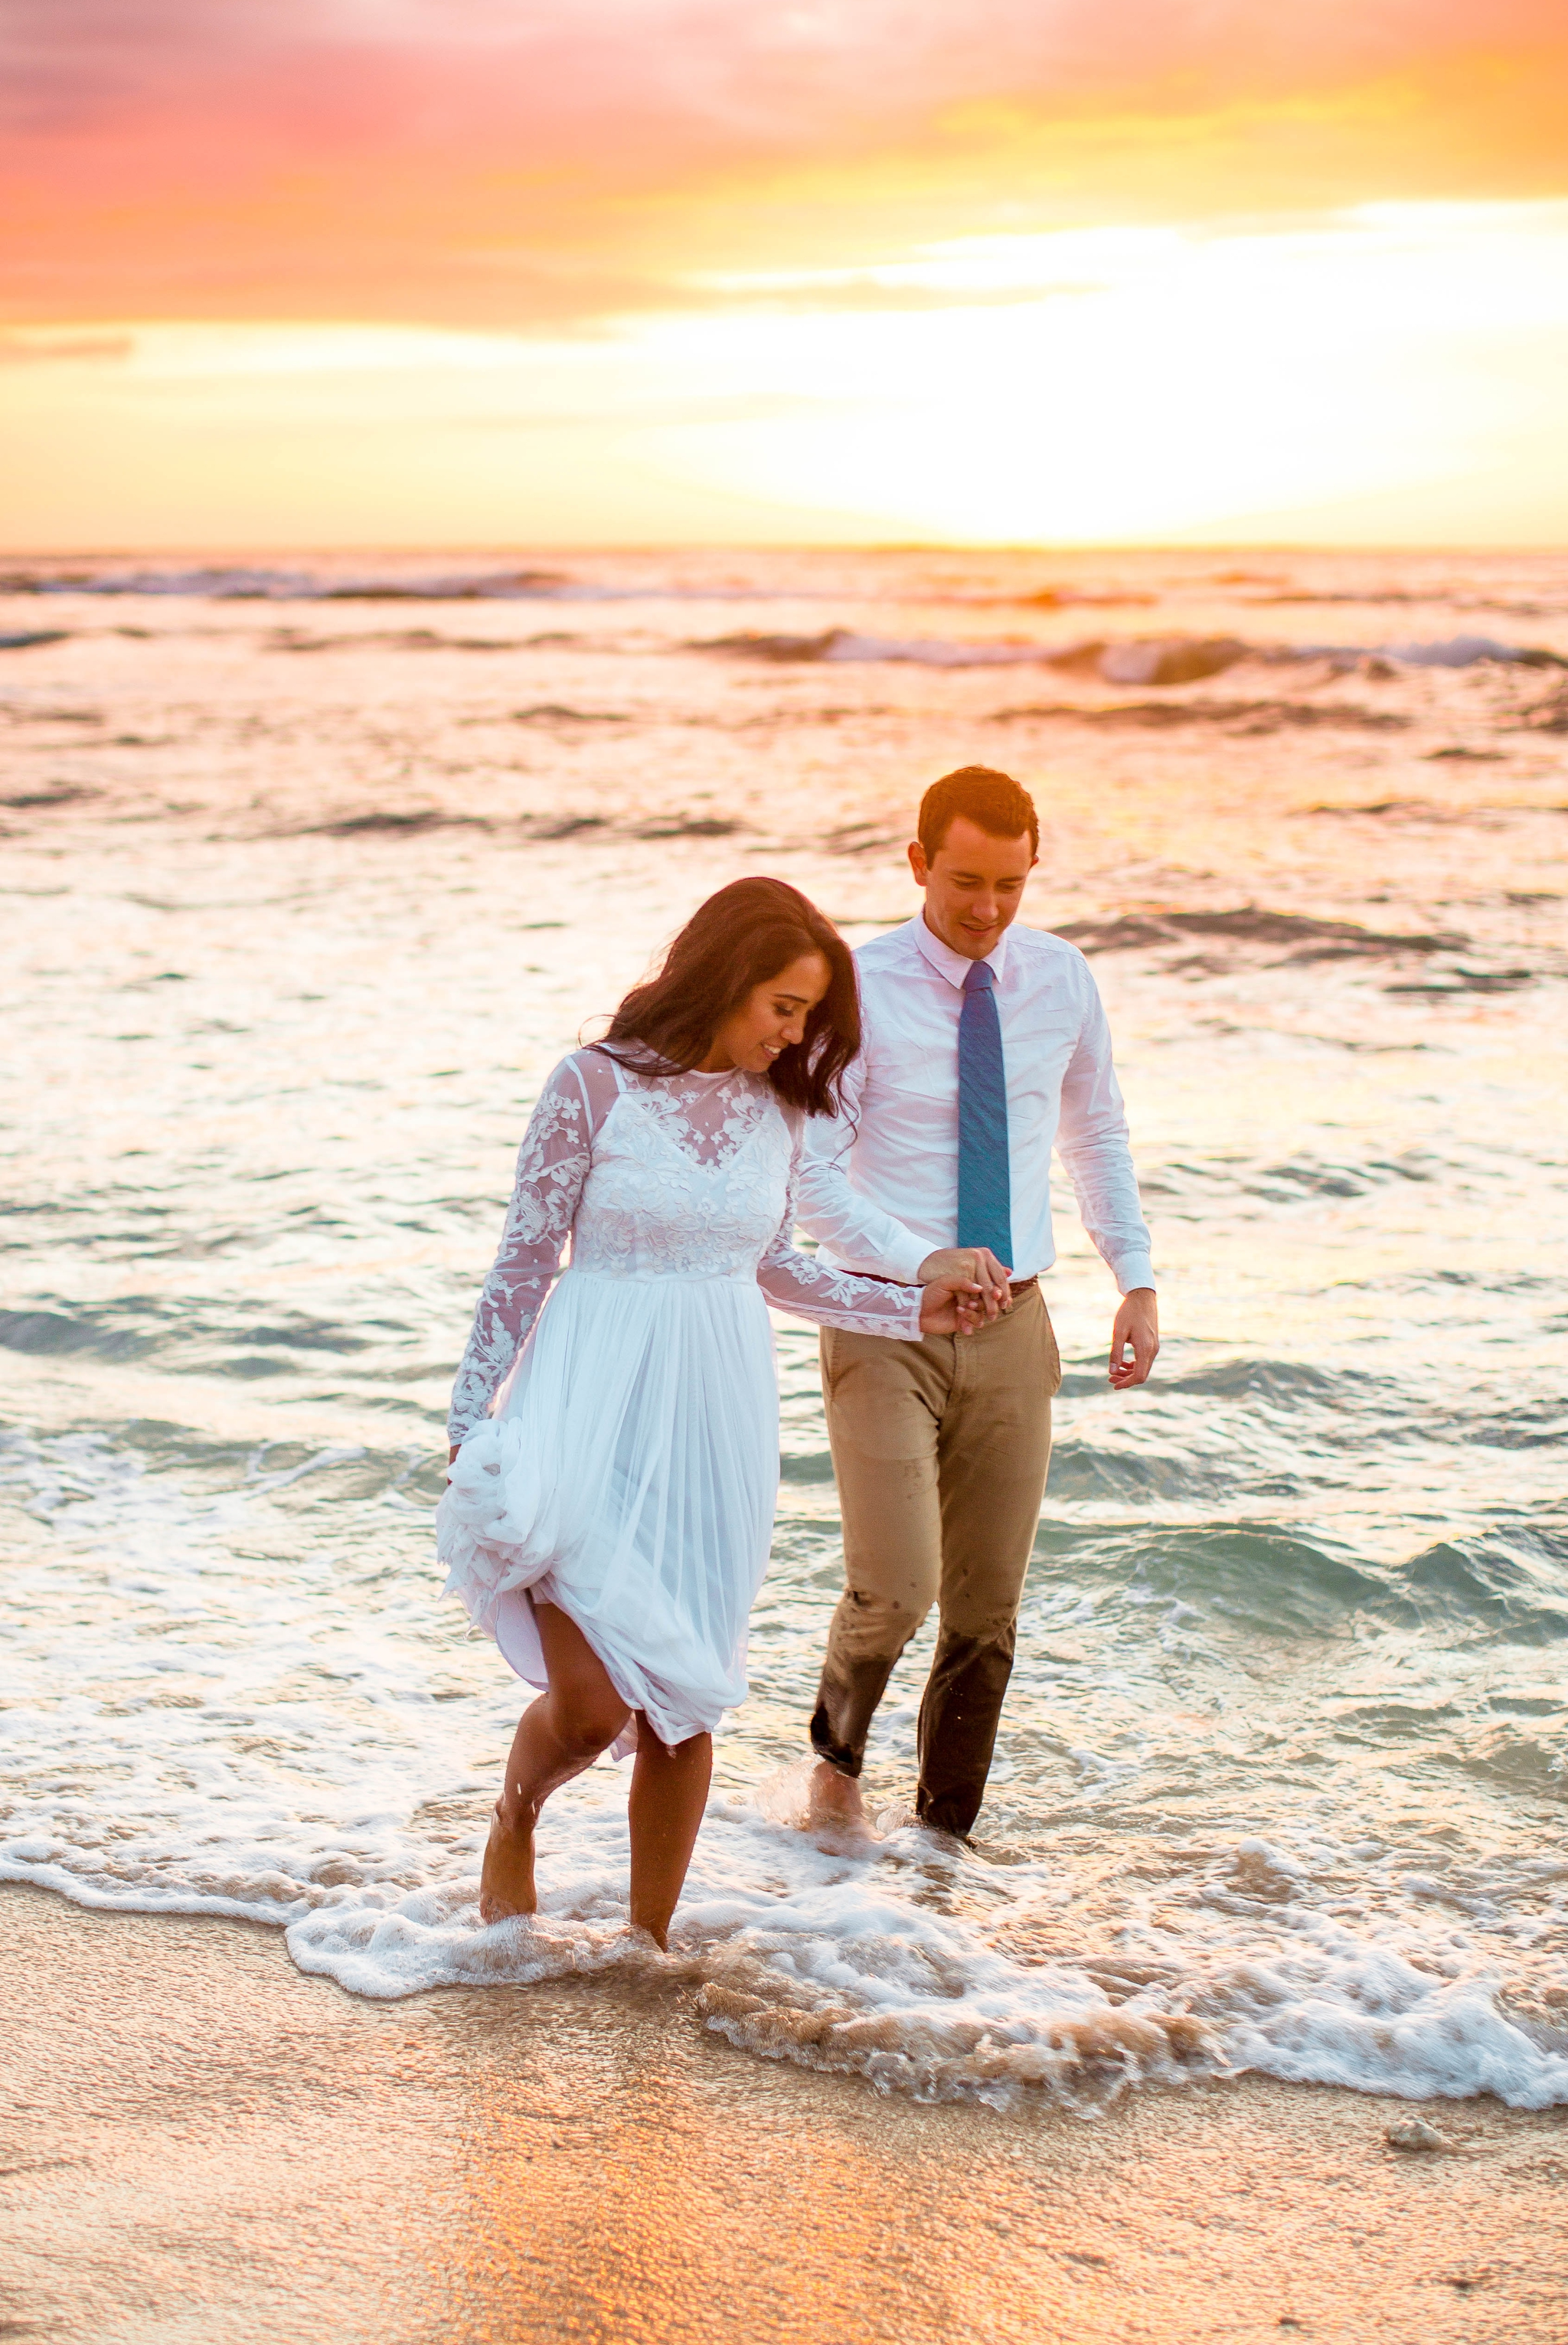 Bride and Groom in the ocean - Wedding Portraits at Sunset in Hawaii - Ana + Elijah - Wedding at Loulu Palm in Haleiwa, HI - Oahu Hawaii Wedding Photographer - #hawaiiweddingphotographer #oahuweddings #hawaiiweddings